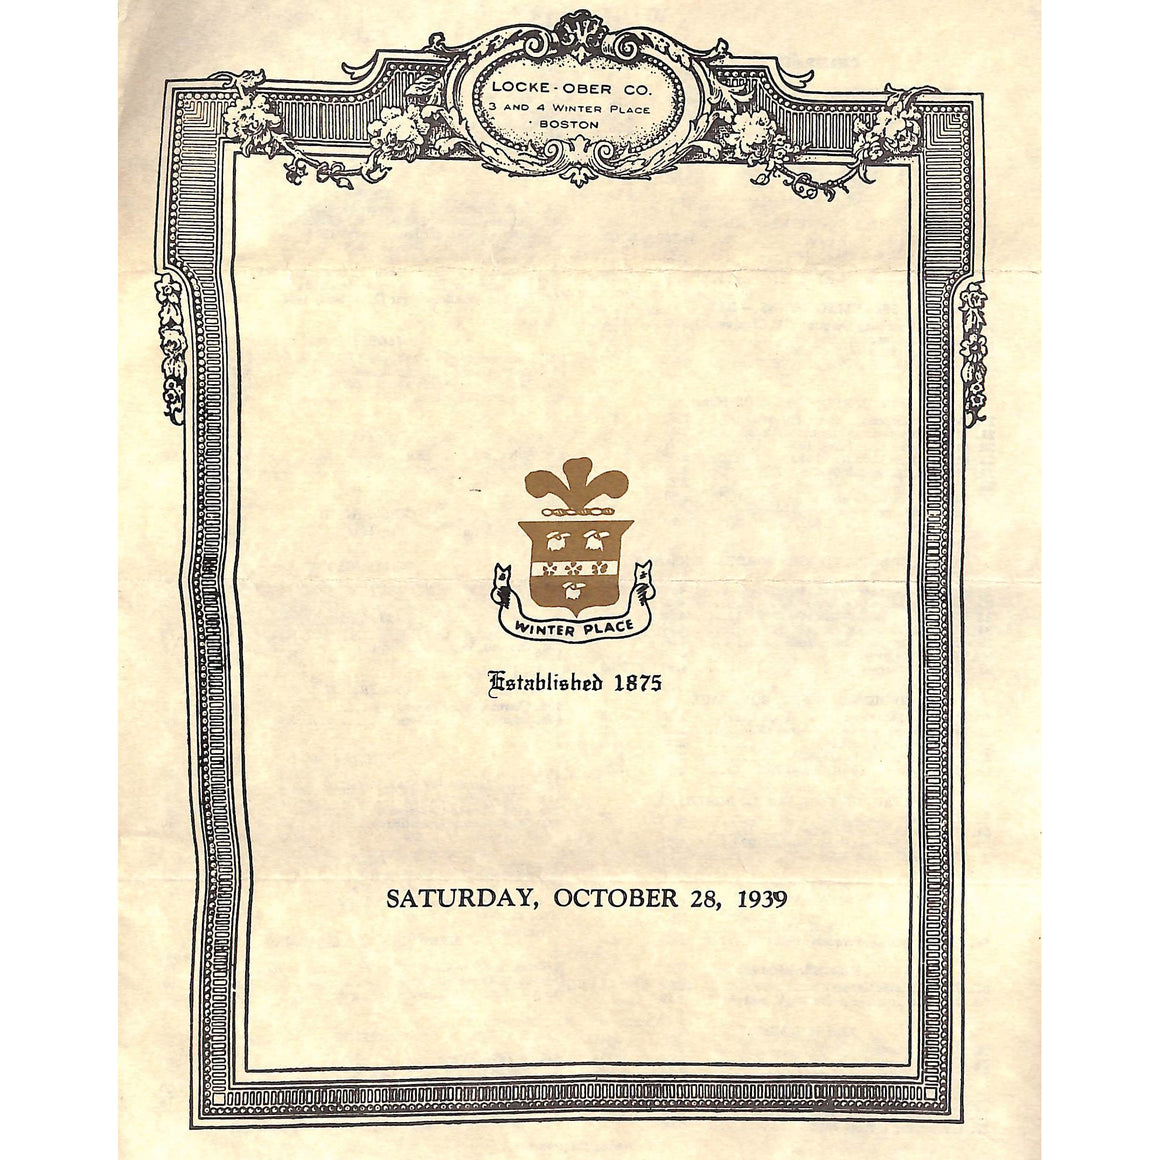 Locke-Ober Co. Menu: Oct. 28, 1939